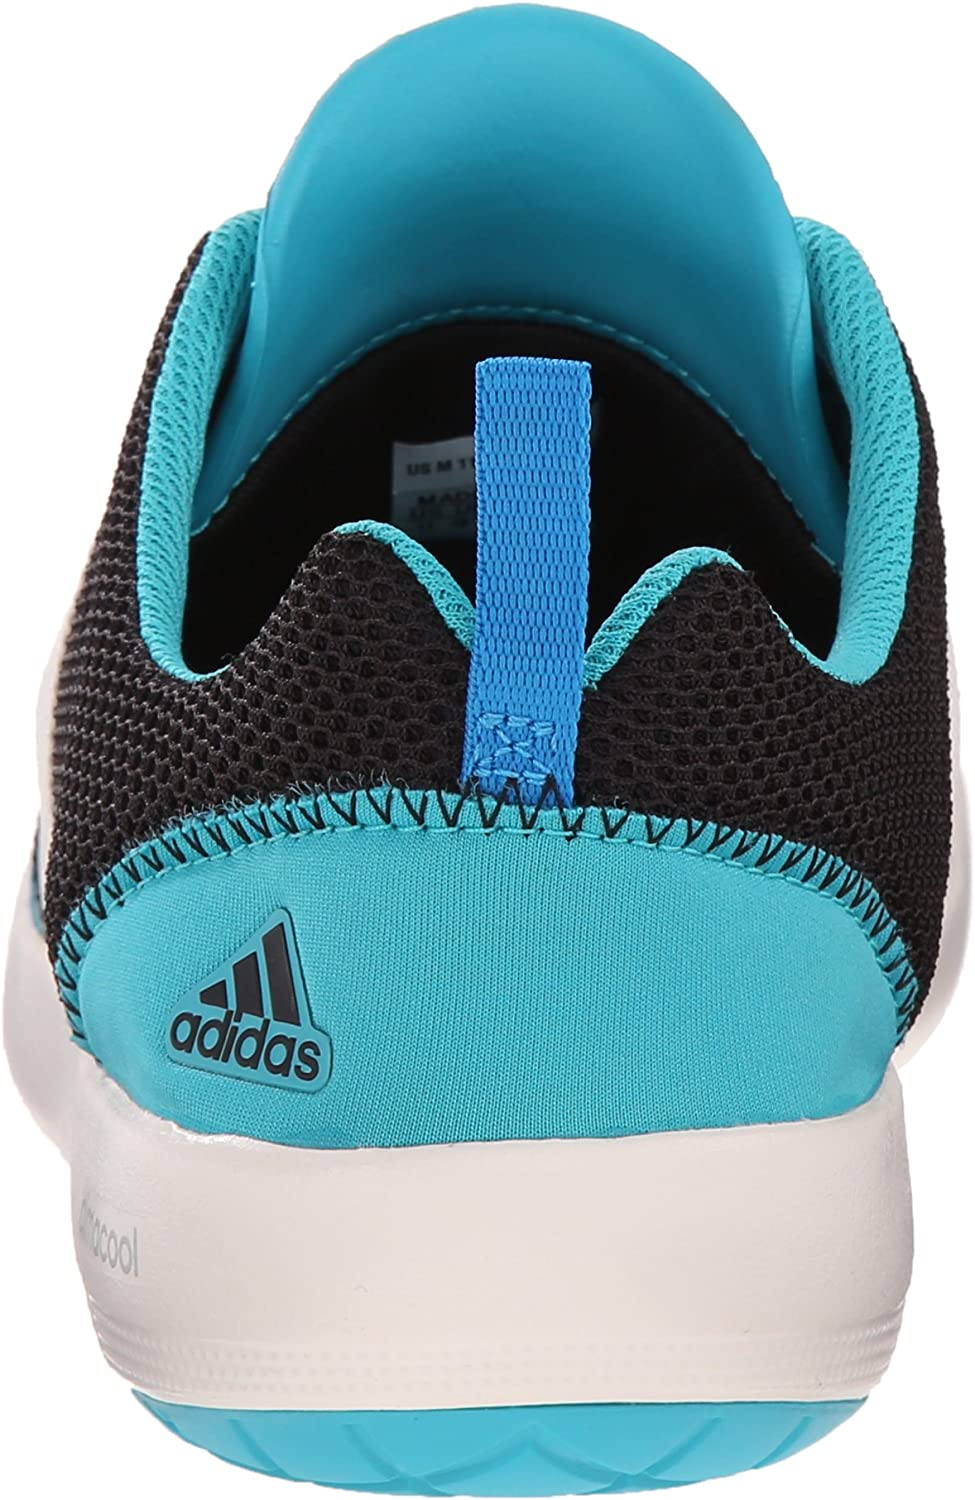 Ennegrecer análisis aguja  Amazon.com | adidas outdoor Men's Climacool Boat Lace Hiking Shoe | Fashion  Sneakers